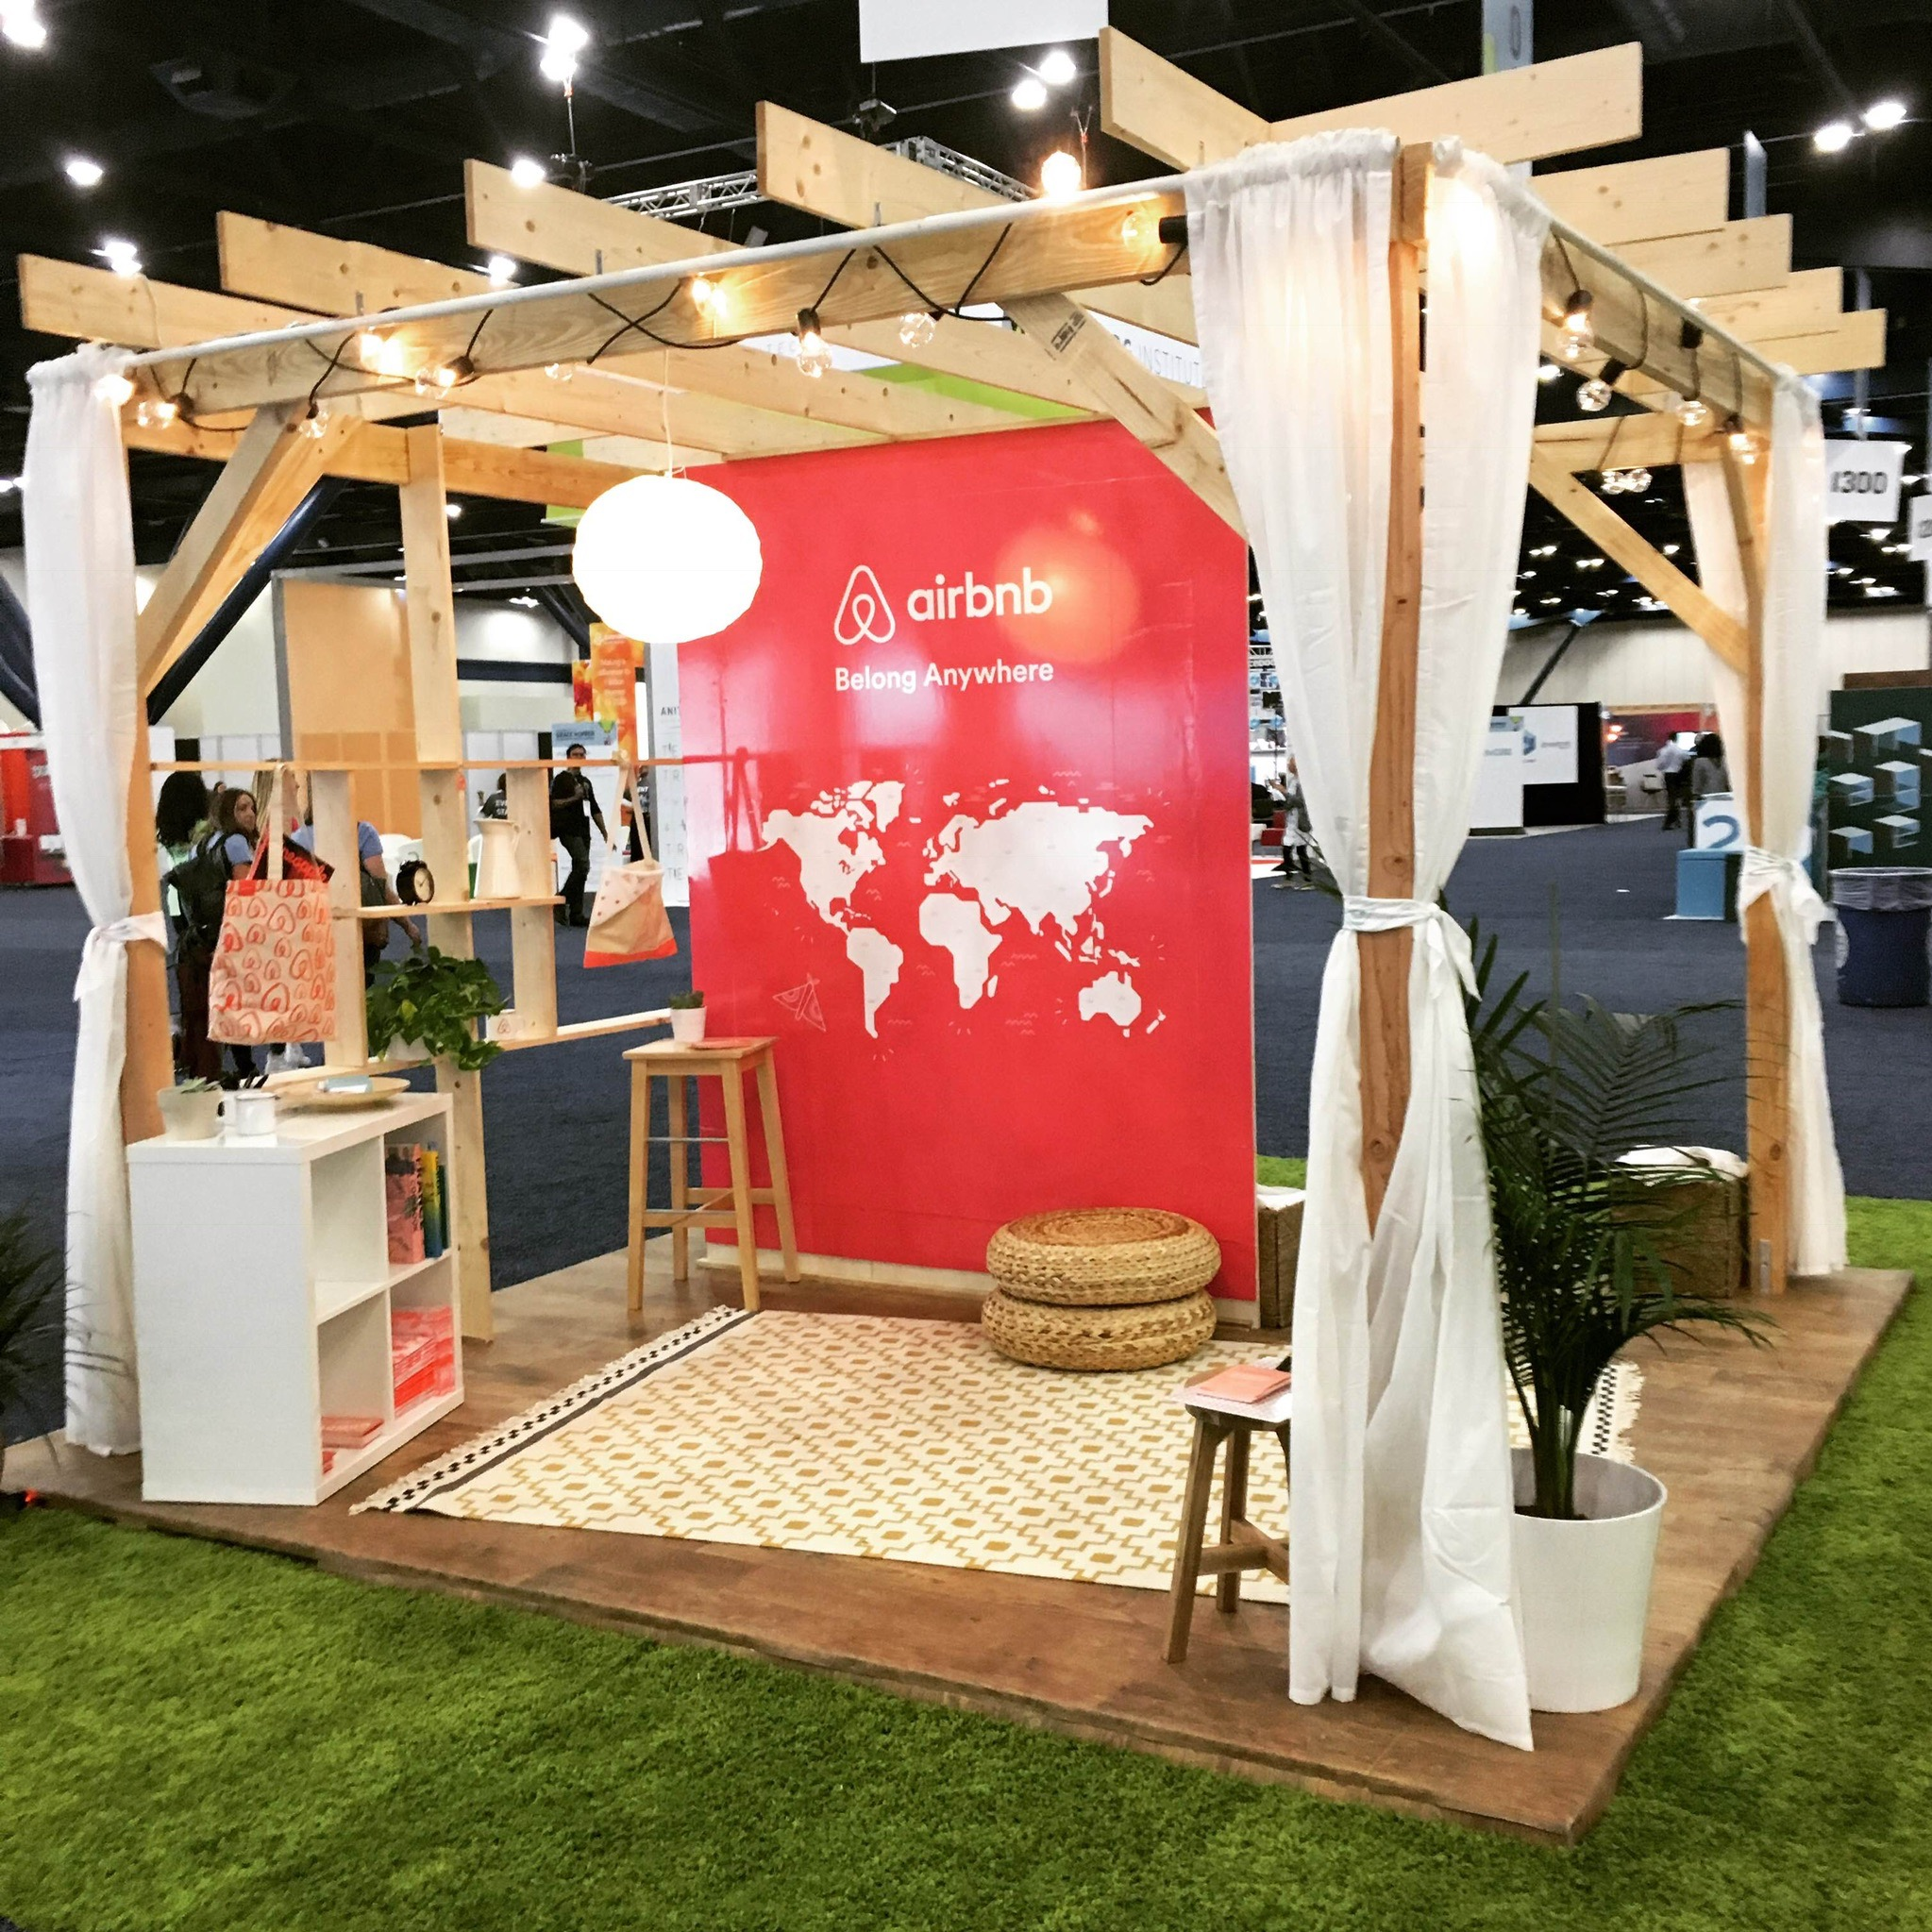 Preview Events - Airbnb - pop up display booth.jpg